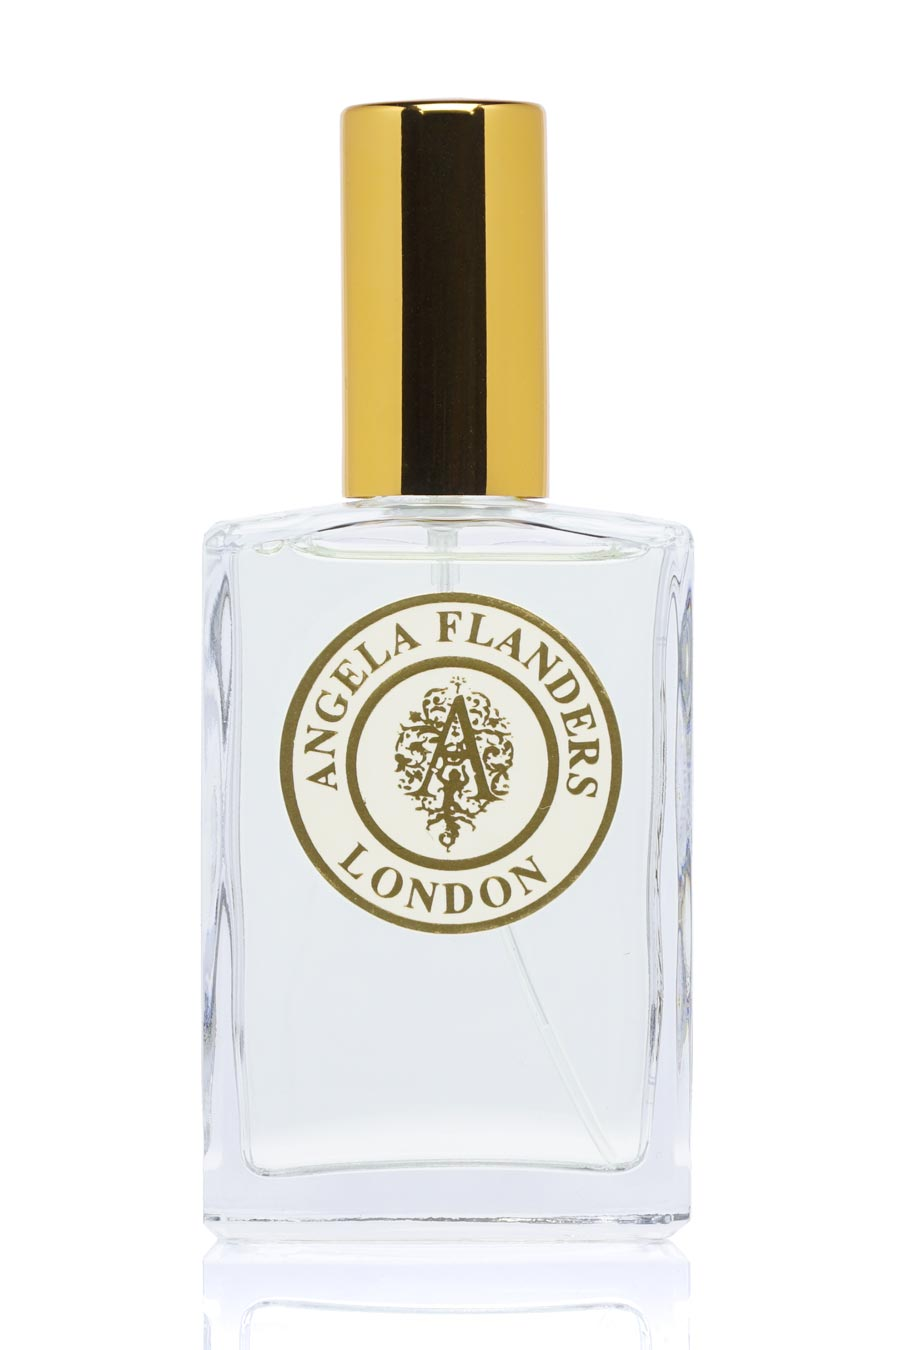 Angela Flanders White Flowers Eau de Parfum 50ml